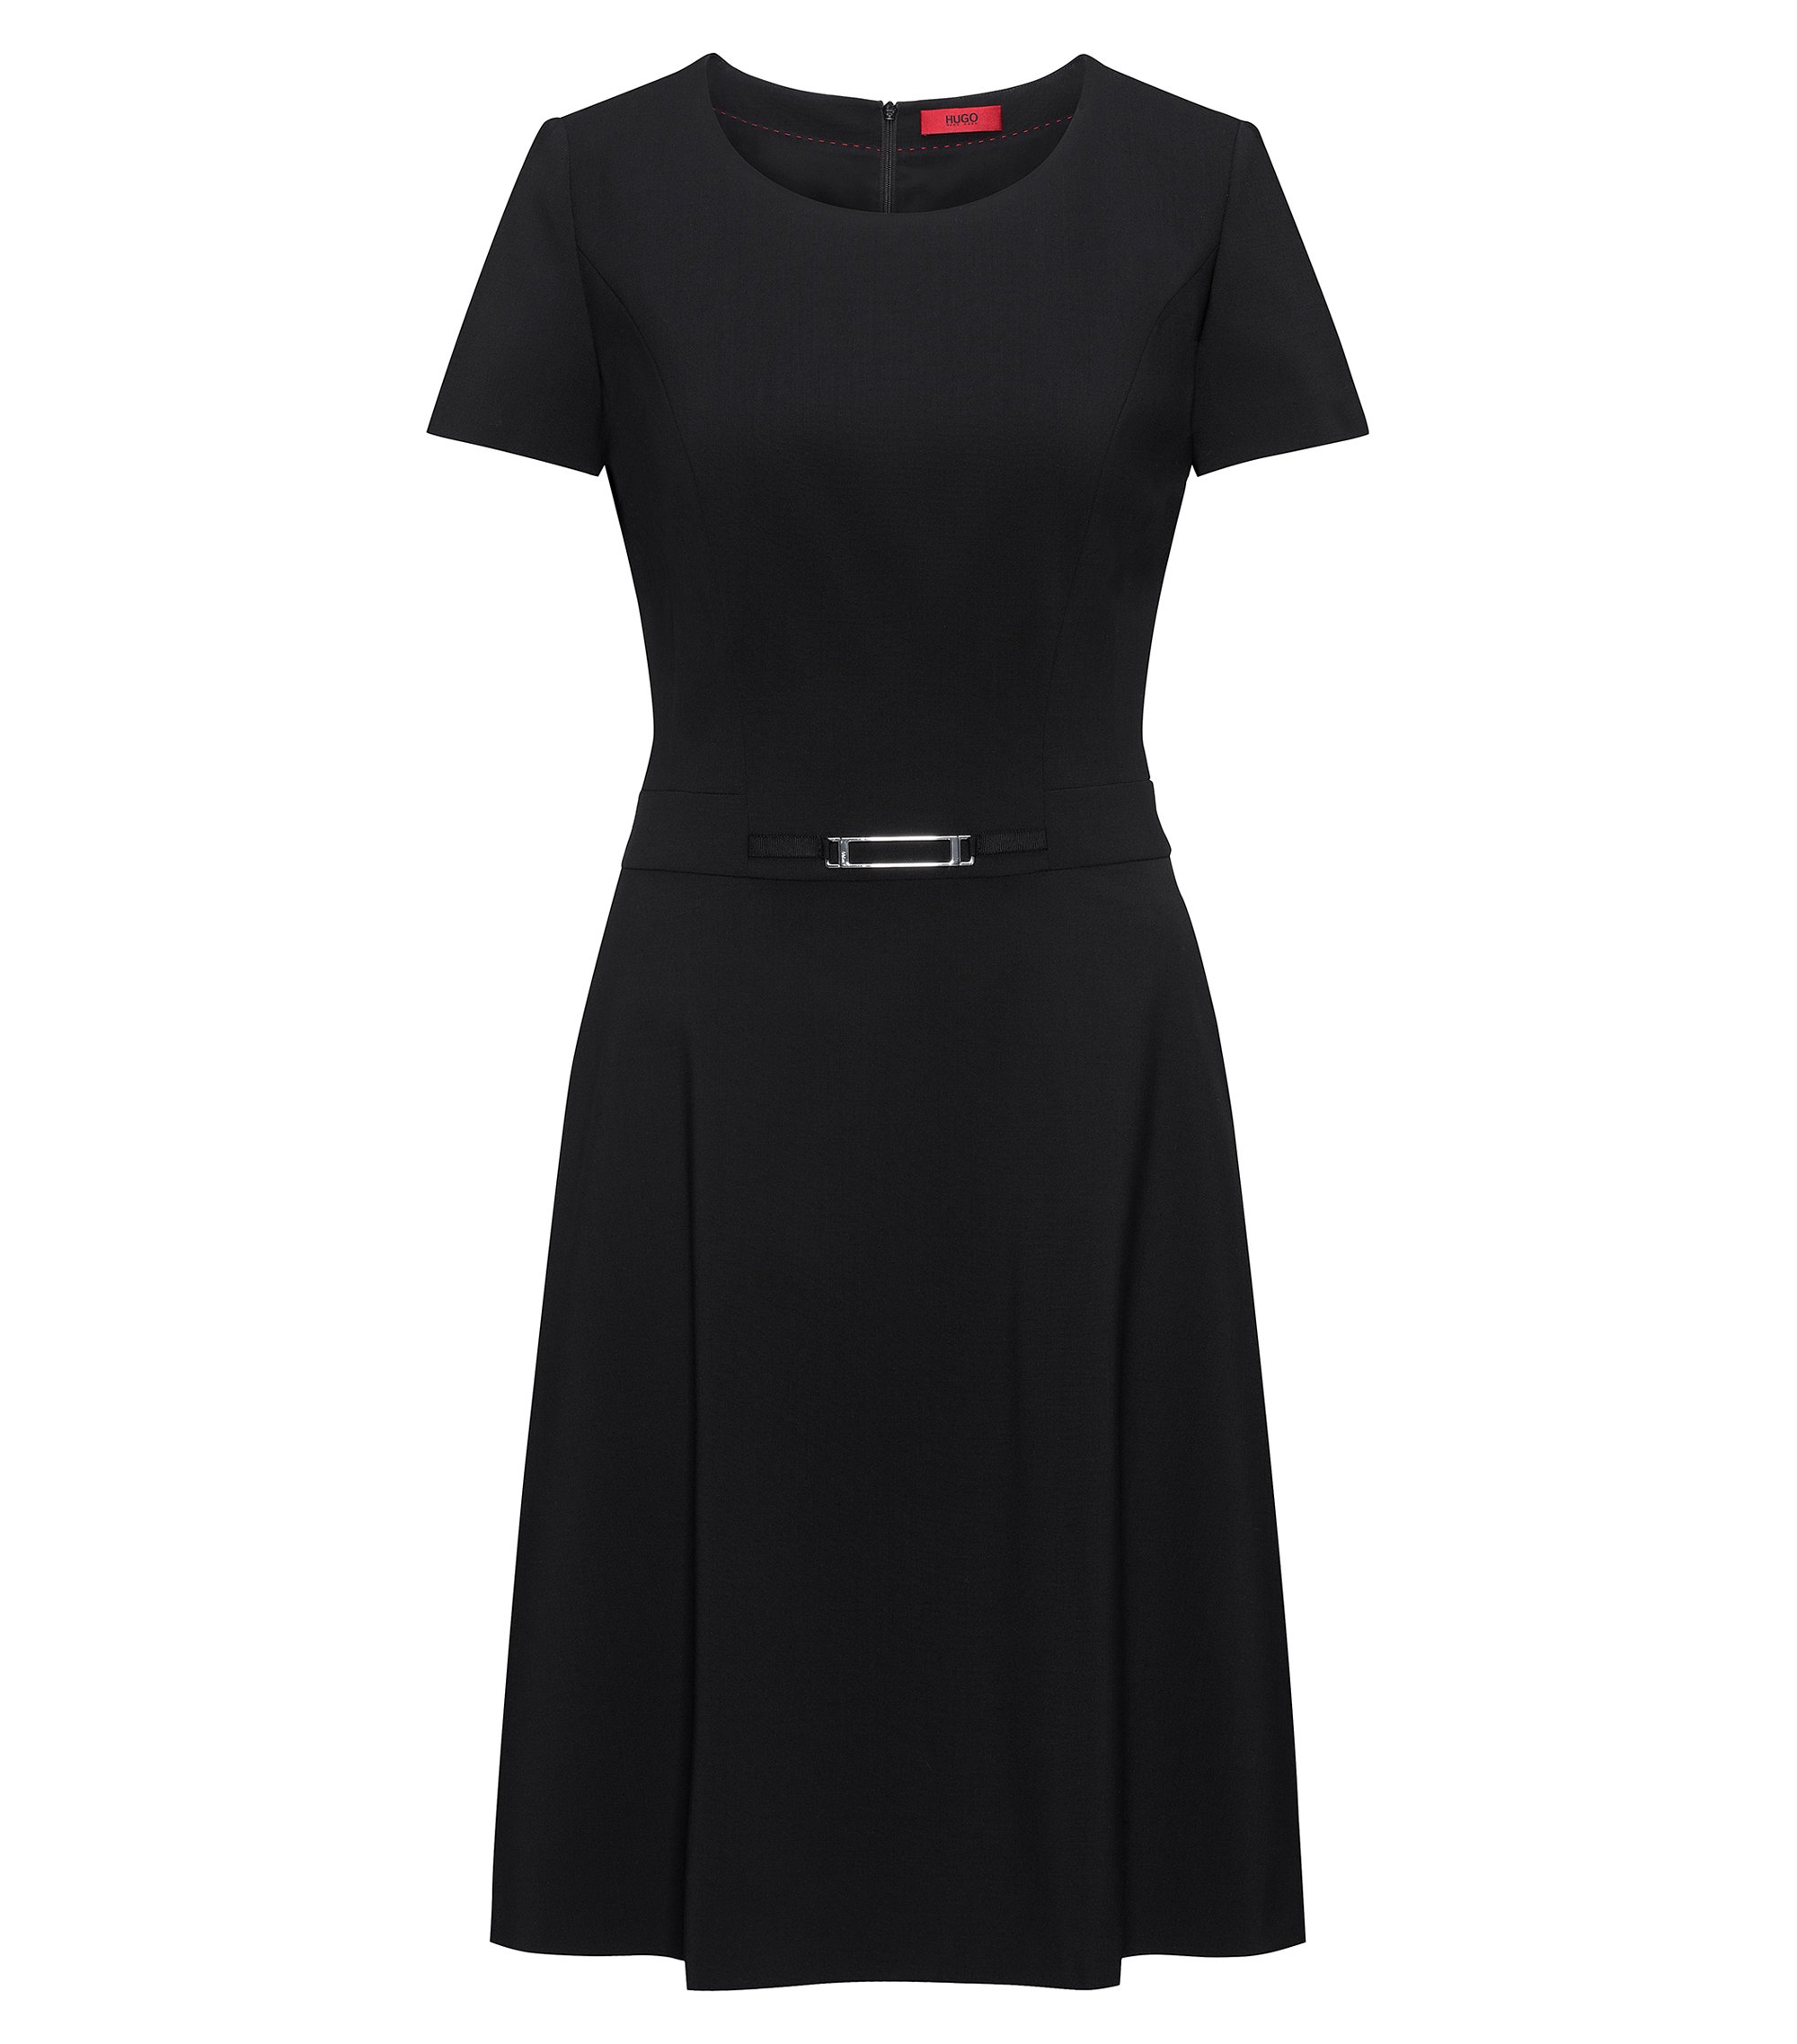 Short-sleeved A-line dress in stretch wool, Black